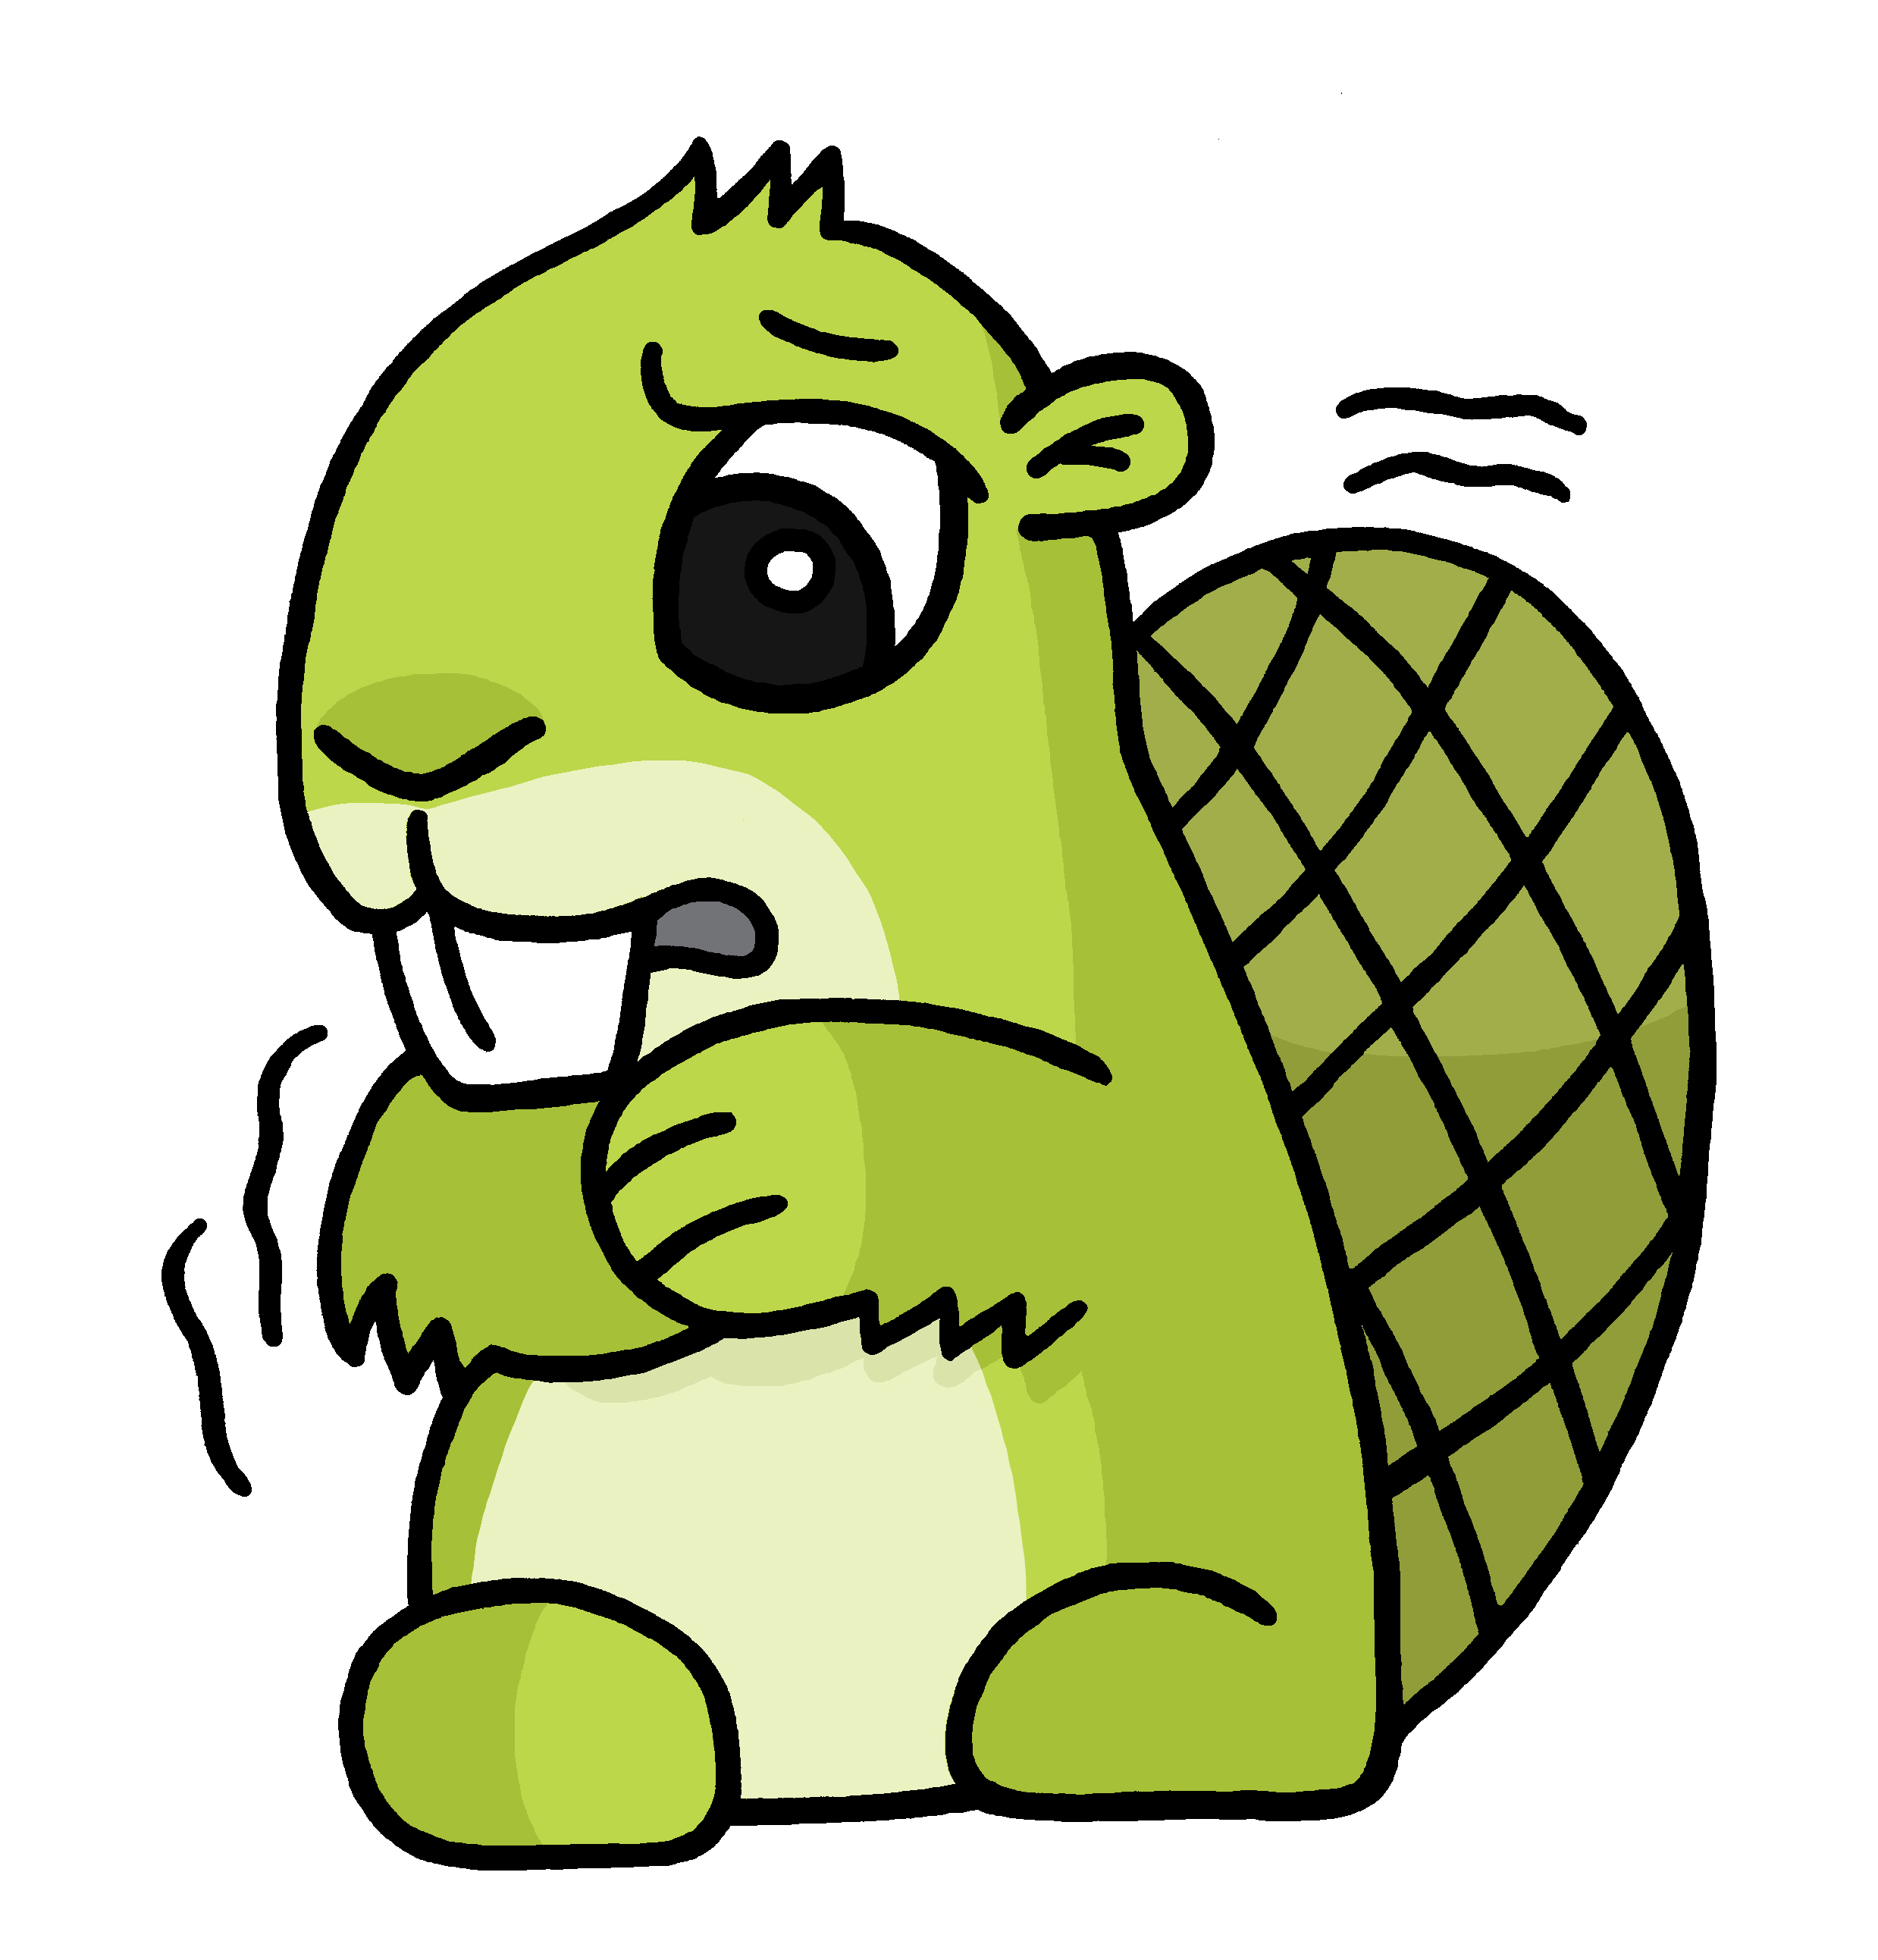 Fear clipart animated. Adsy transparent png stickpng